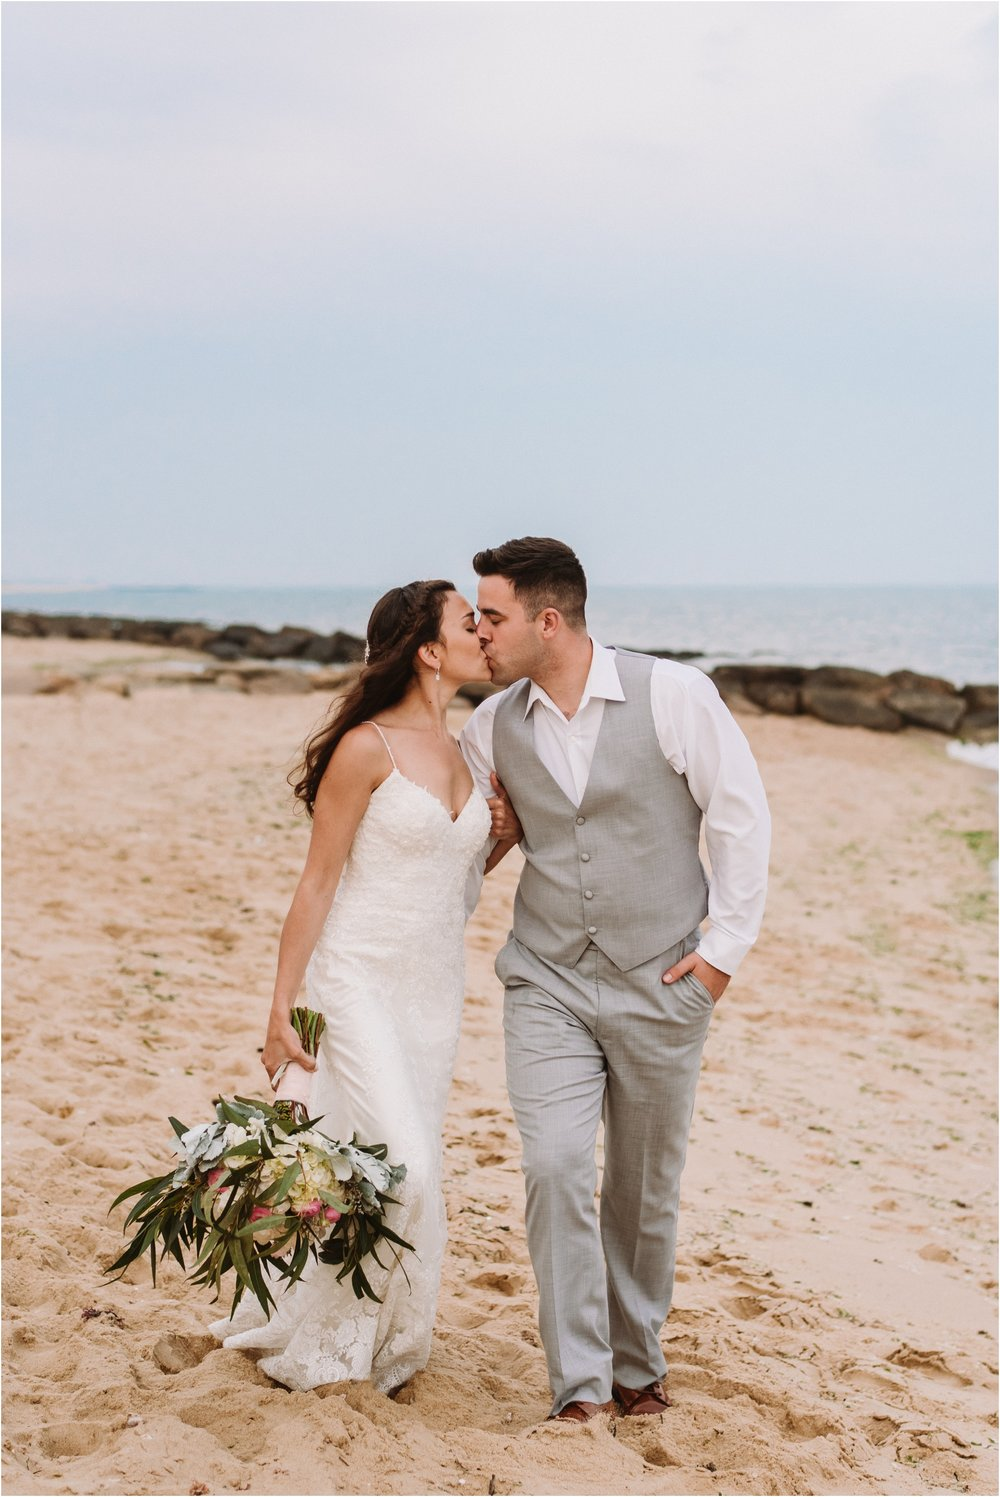 Sarah & Sam Pelham House Cape Cod Wedding Photographer-196.jpg